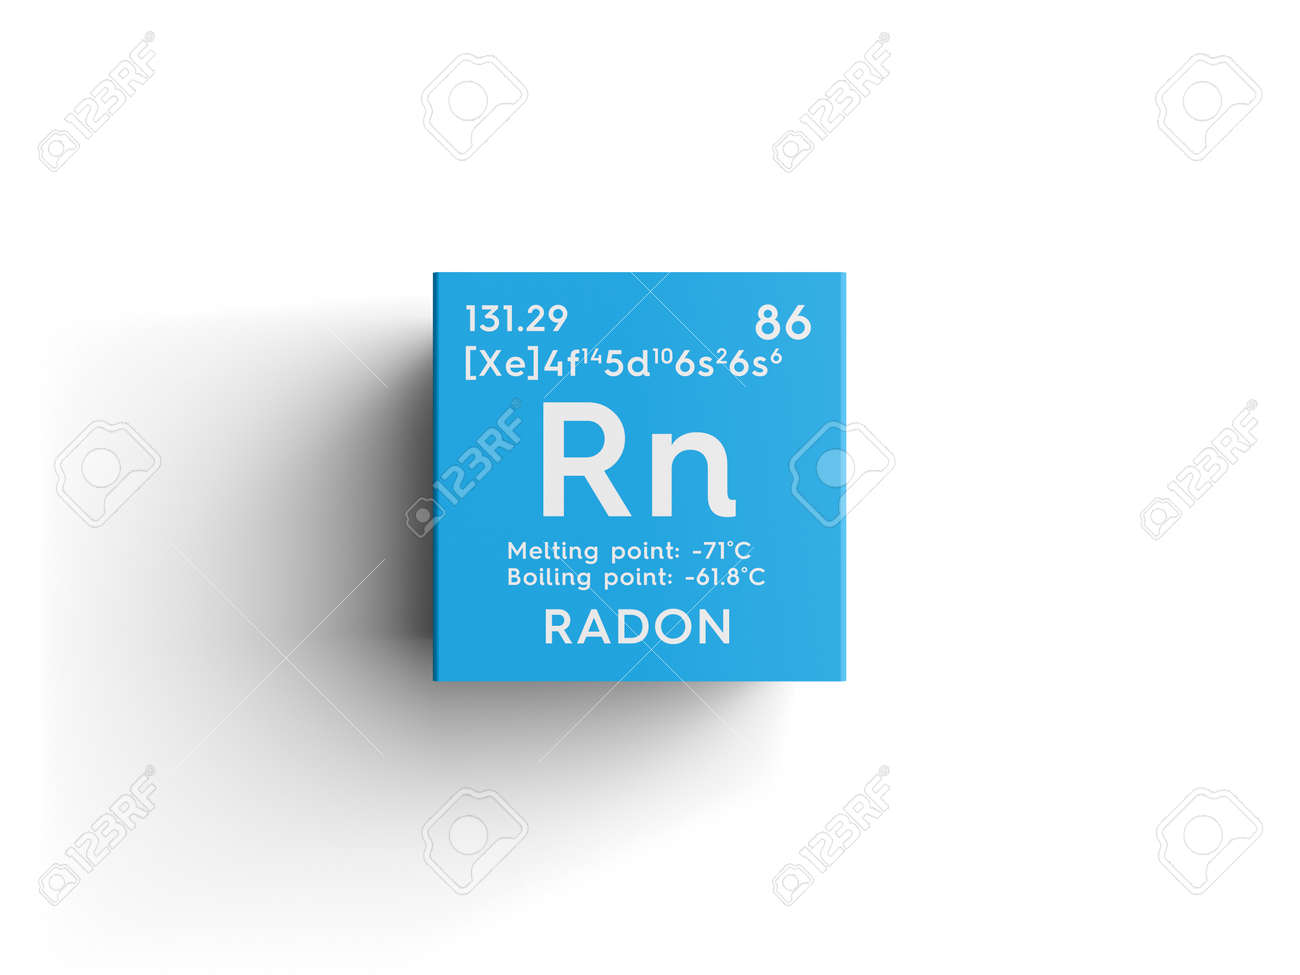 Radon periodic table facts choice image periodic table images radon periodic table facts choice image periodic table images radon periodic table square aviongoldcorp radon le gamestrikefo Image collections